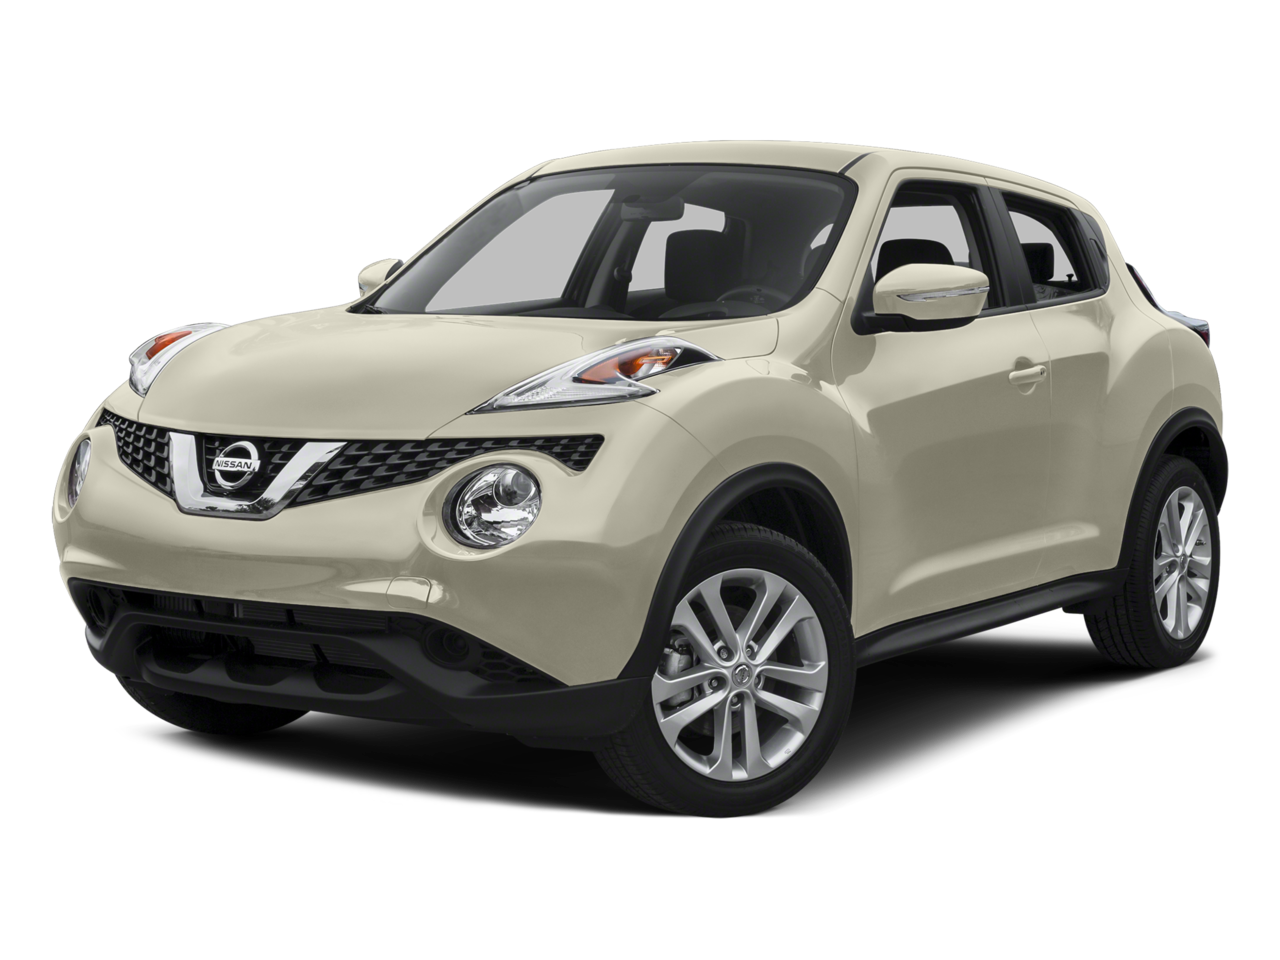 Free download of Nissan  PNG Clipart